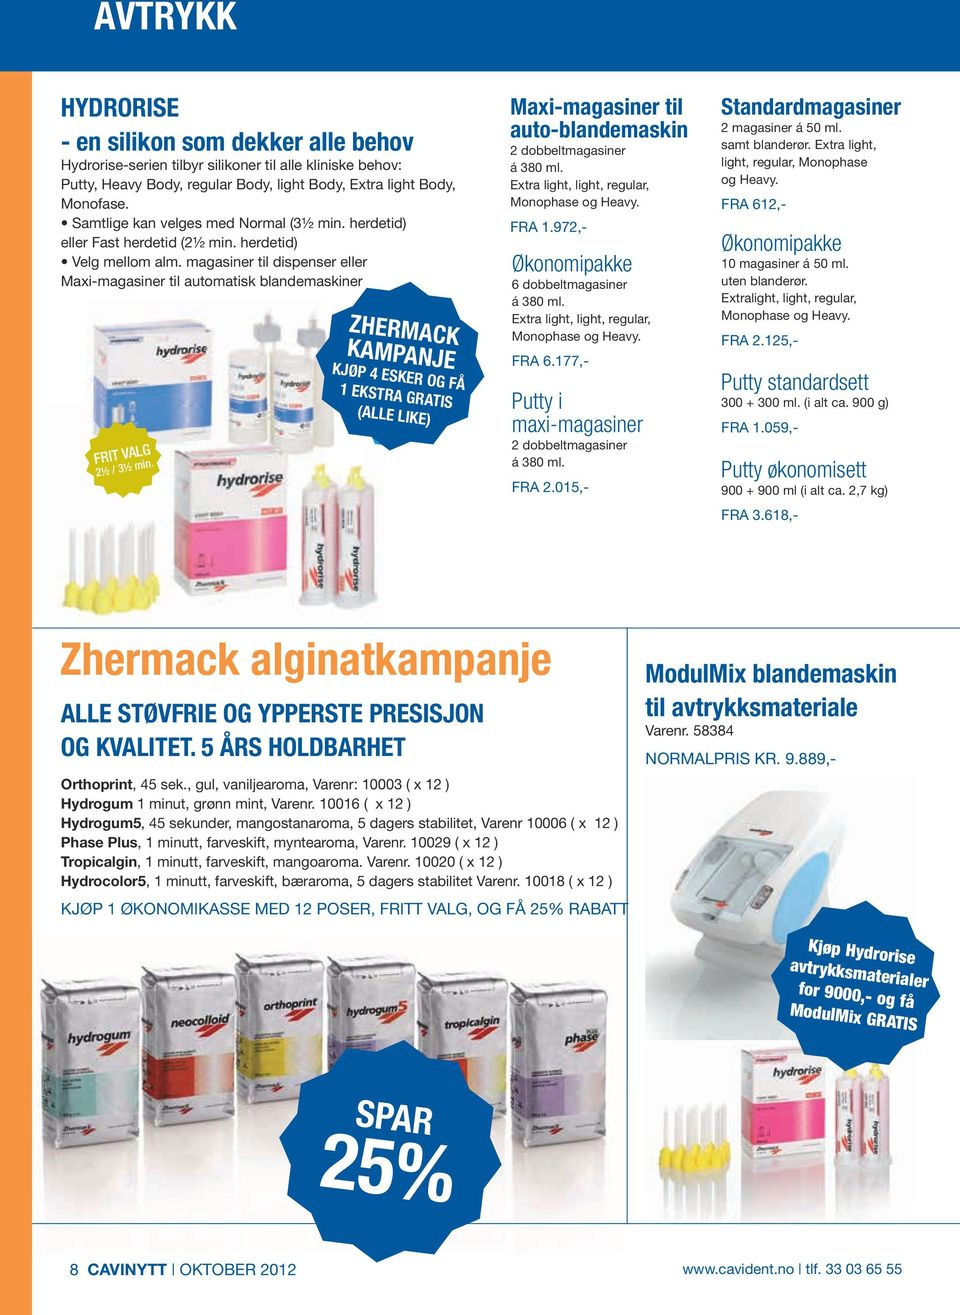 ml. putty, Putty, - en silikone, Heavy Body, der dækker regular alle Body, behov light Body, extra Extra light auto-blandemaskine Body, Extra extra æske light, light, med light, light, 2 stk.